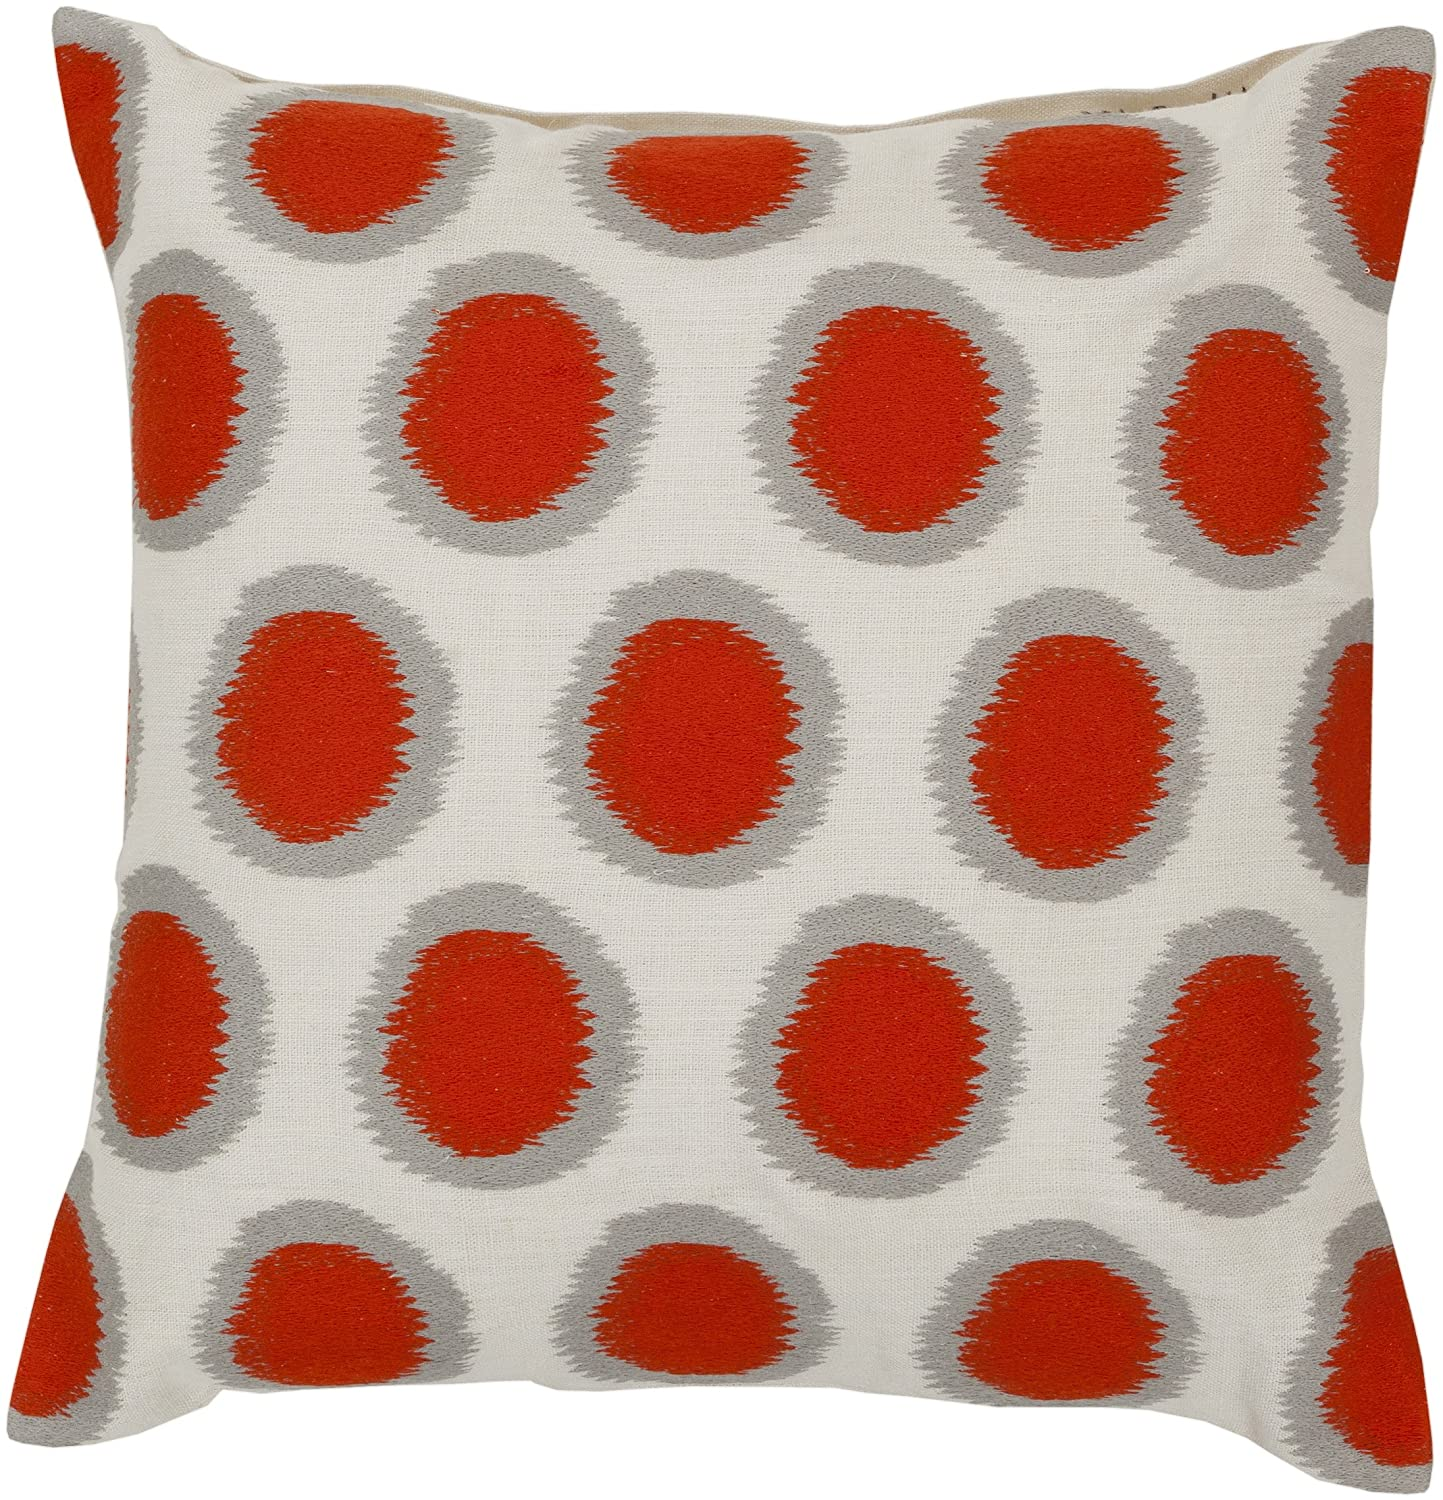 Surya AR092-1818D Down Fill Pillow, 18 by 18-Inch, Poppy